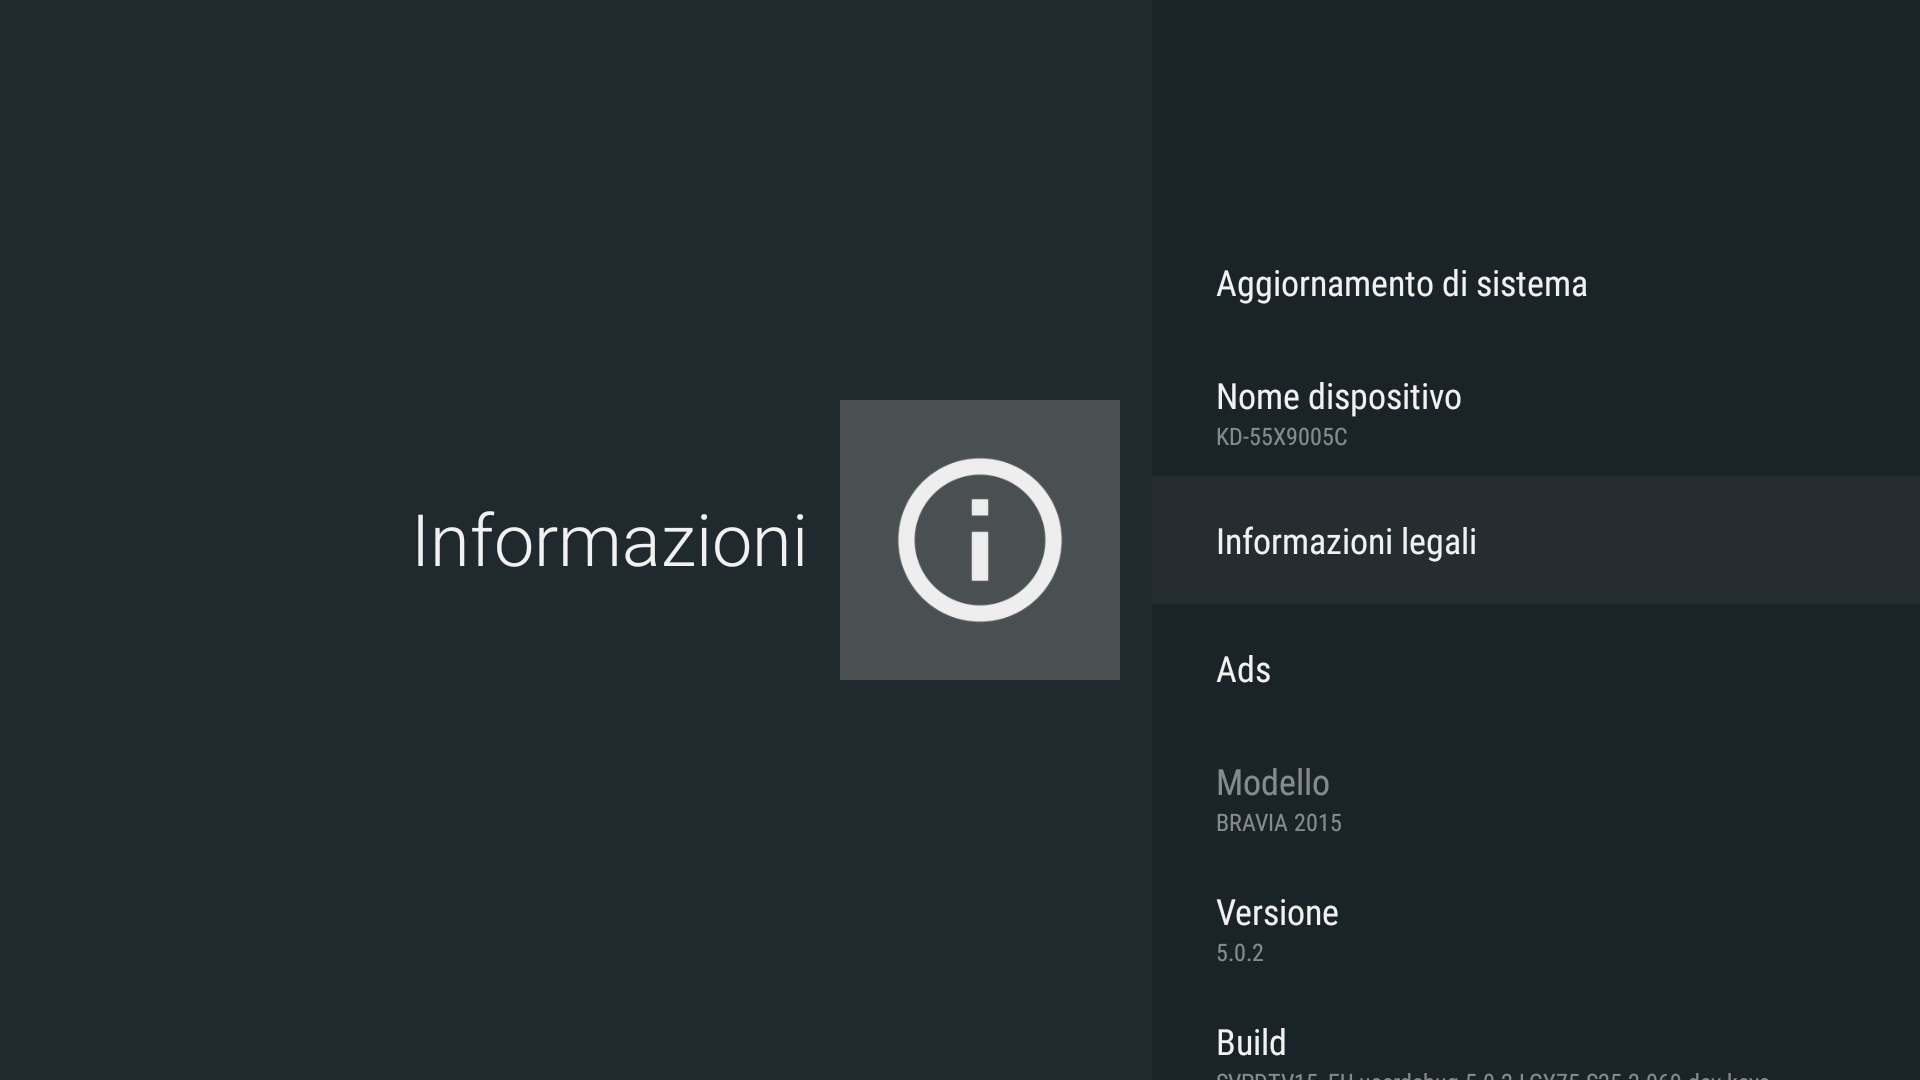 Android - Legal information (Android - Informazioni legali)